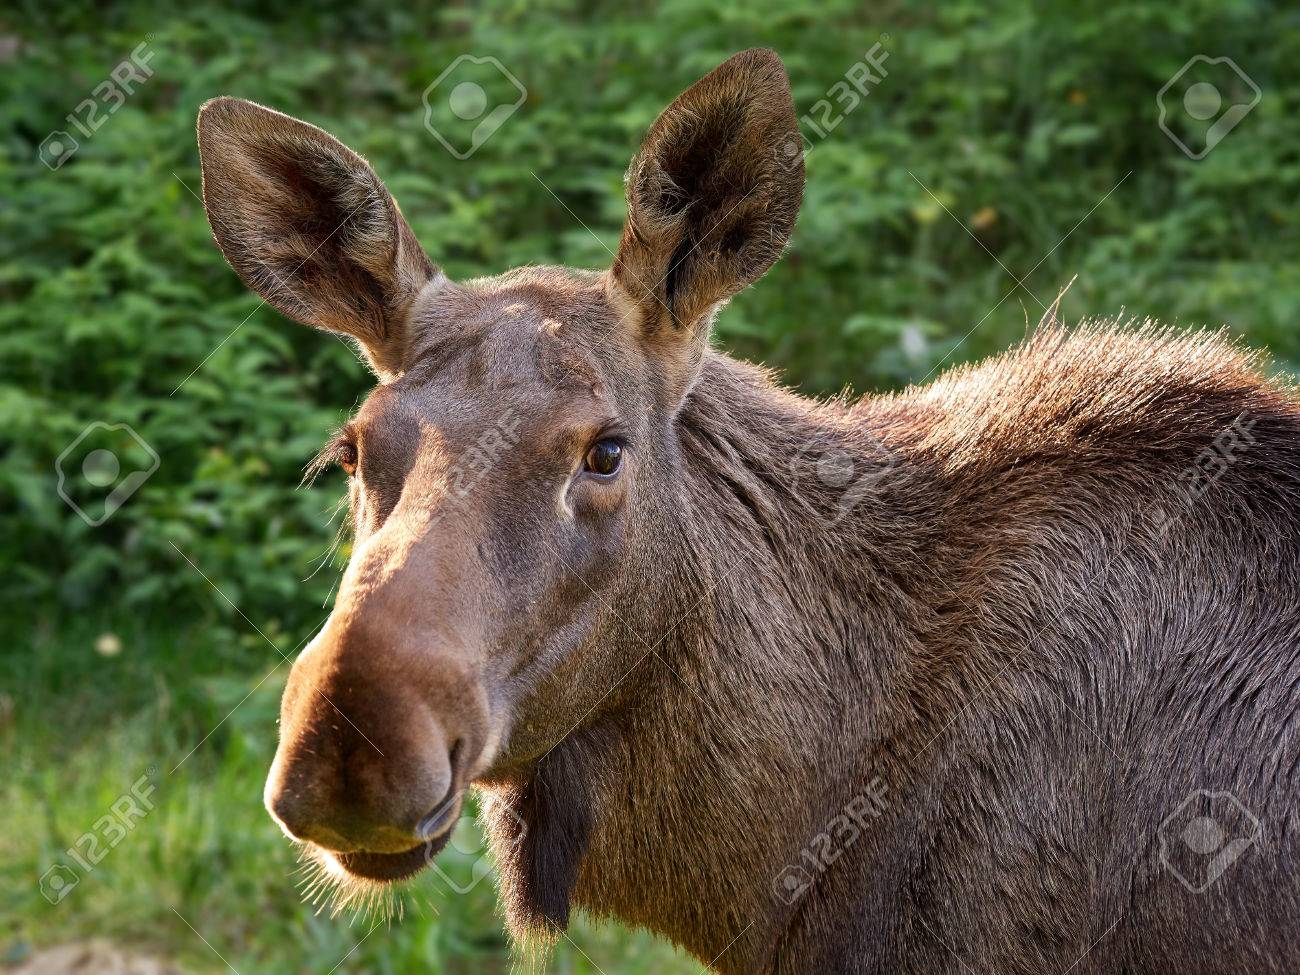 Big brown moose staring curiously in close up animal portrait. Stock Photo - 77310176